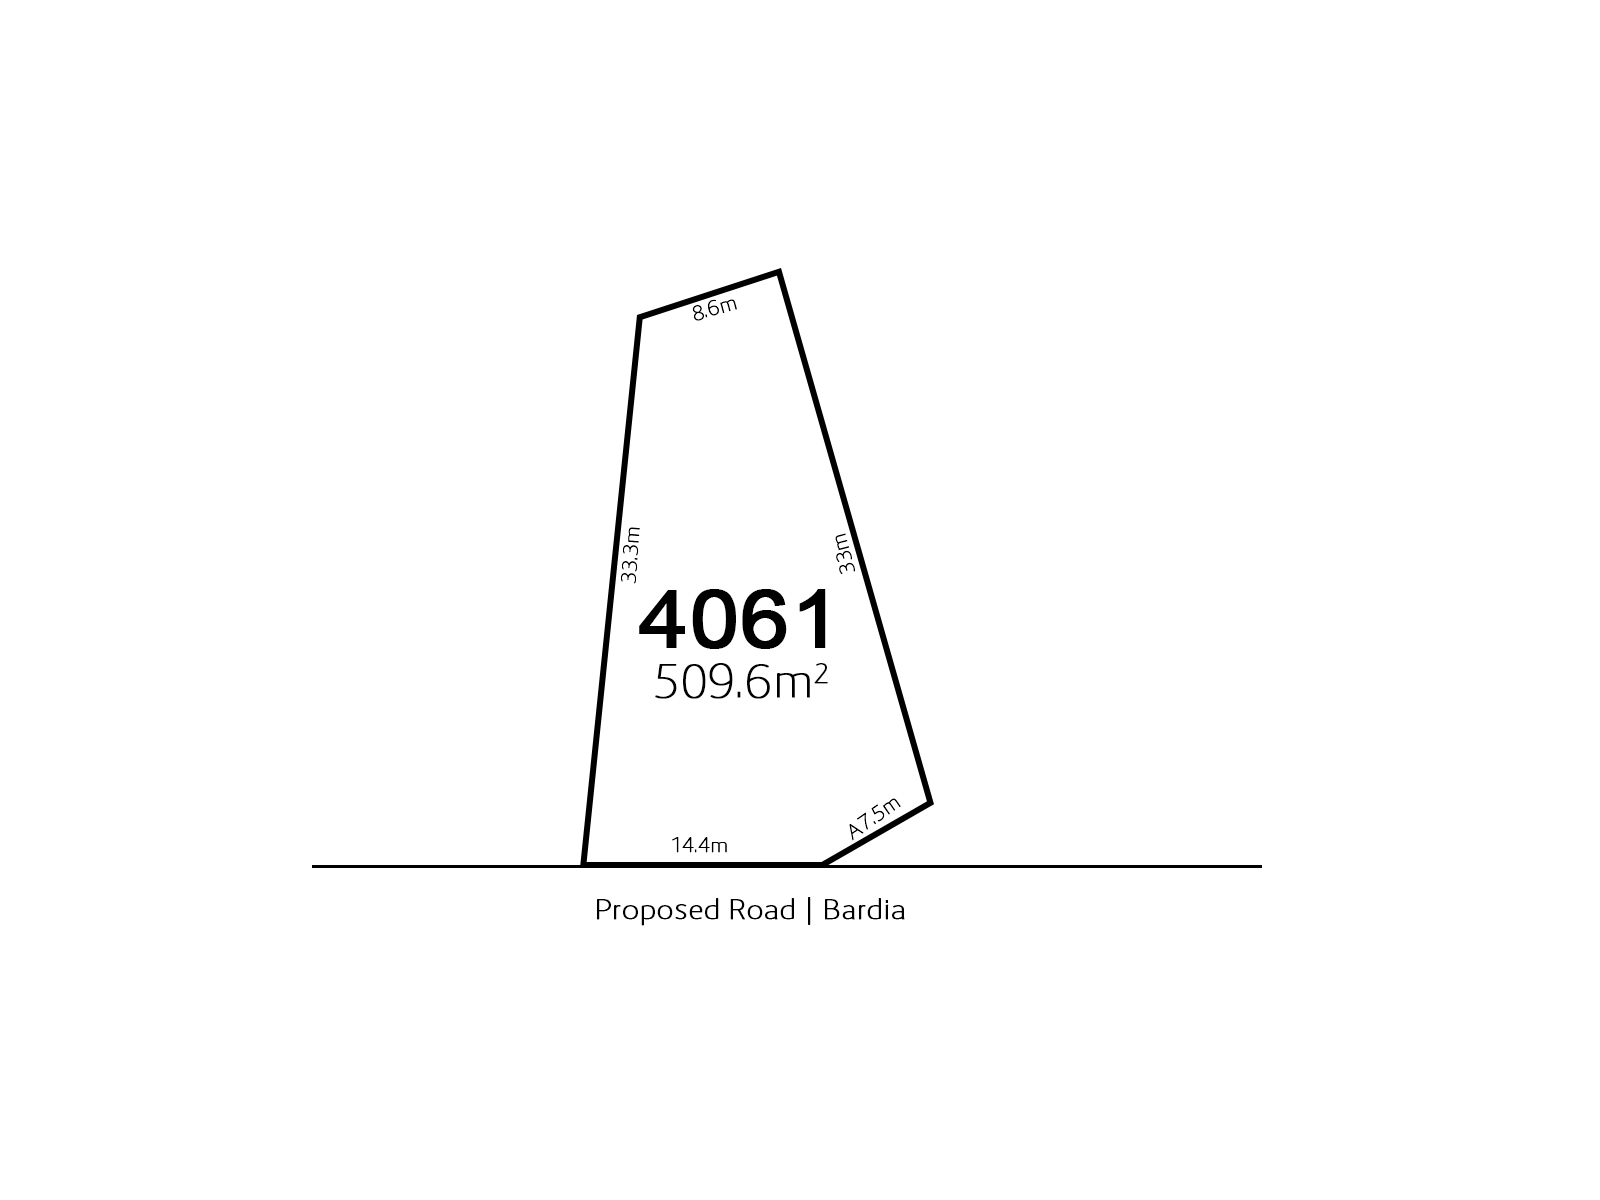 Bardia LOT 4061 Proposed Road | Bardia